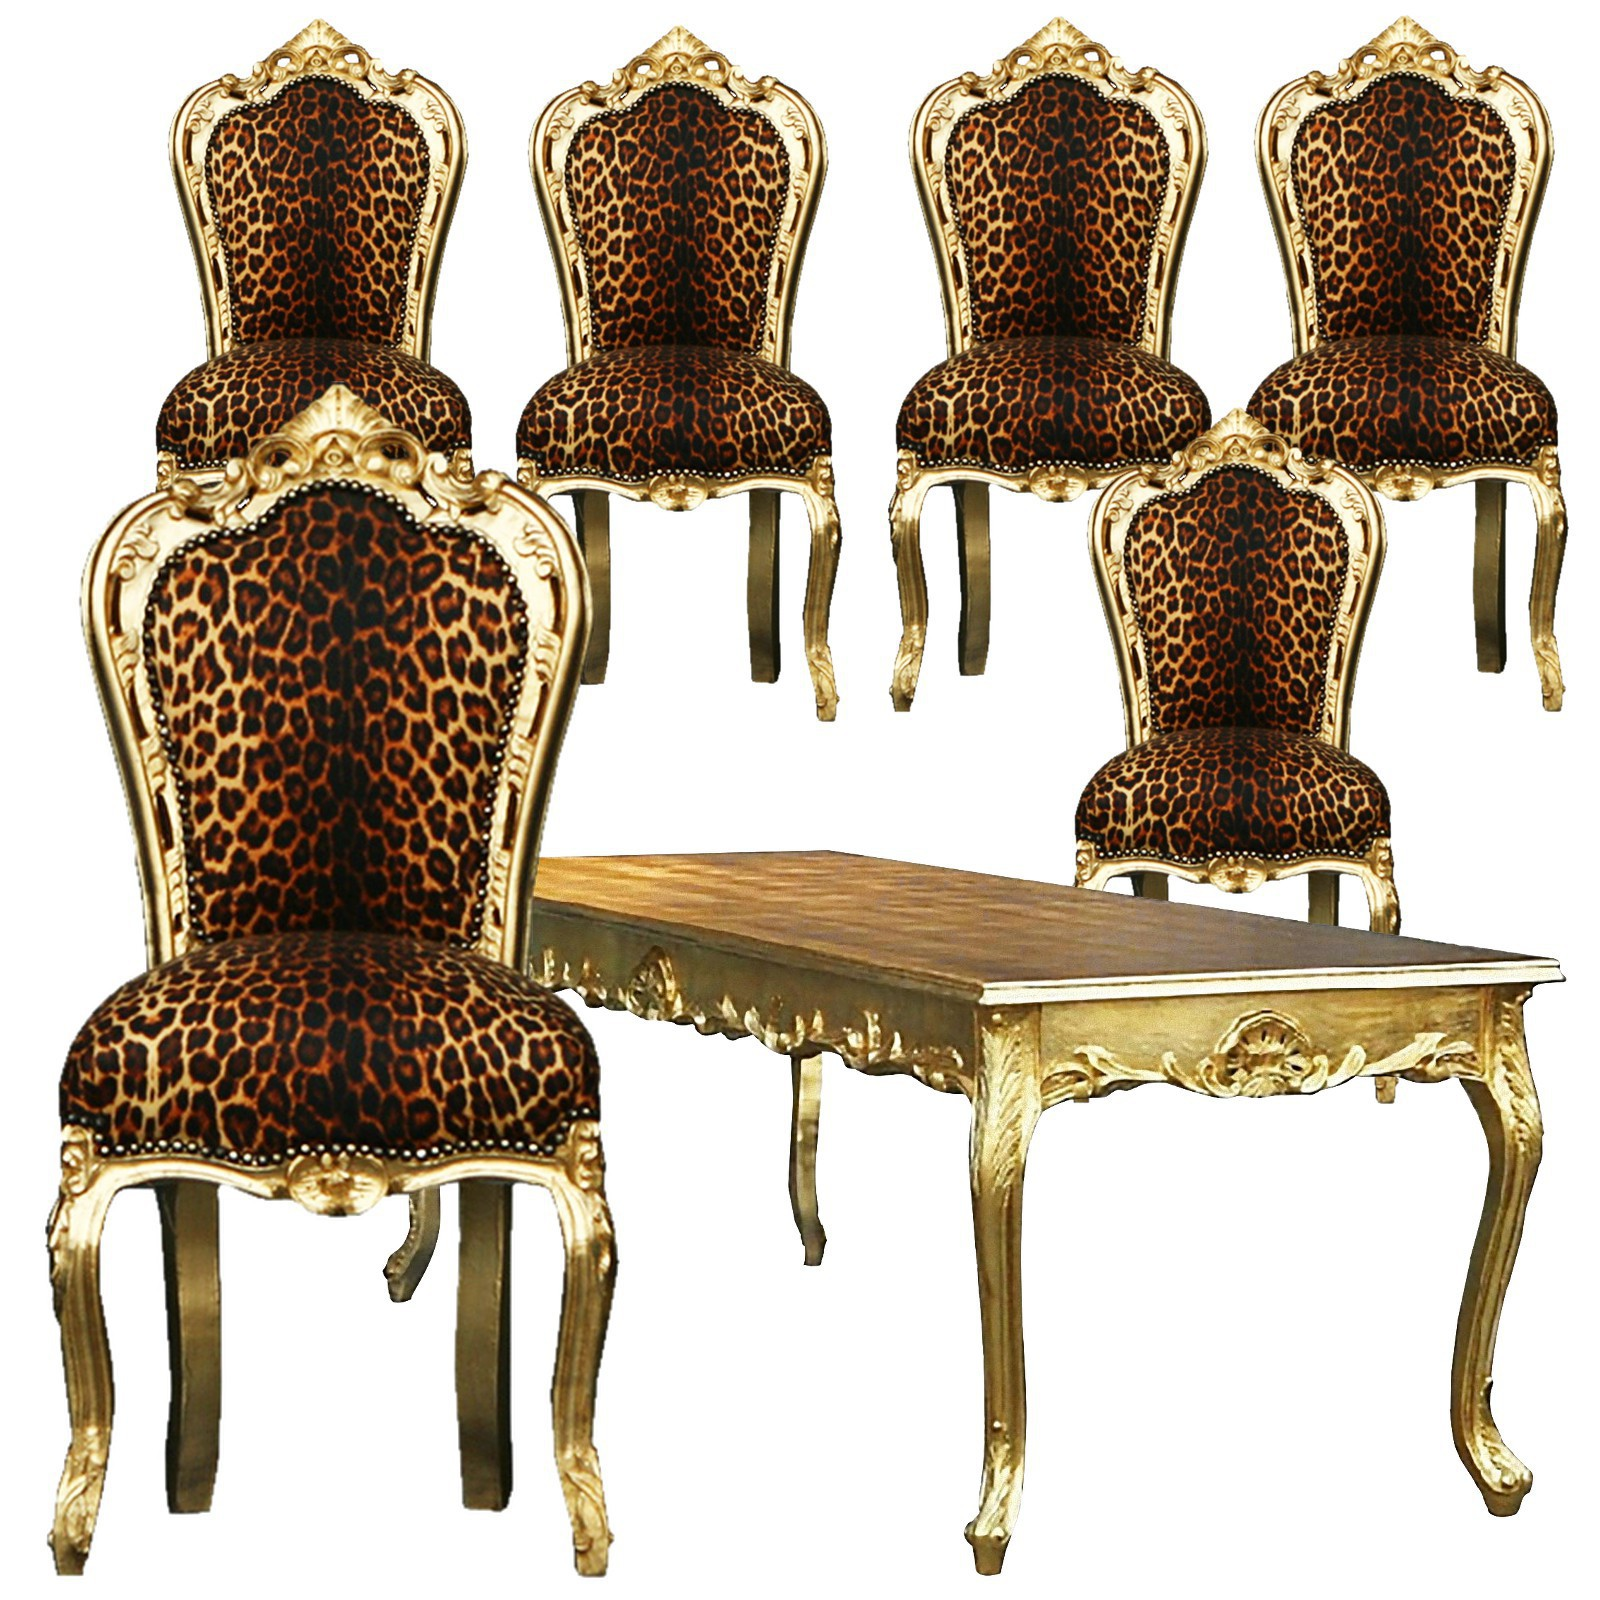 esszimmertisch mit st hlen barockm bel speisezimmer antik 7er set leopard gold. Black Bedroom Furniture Sets. Home Design Ideas